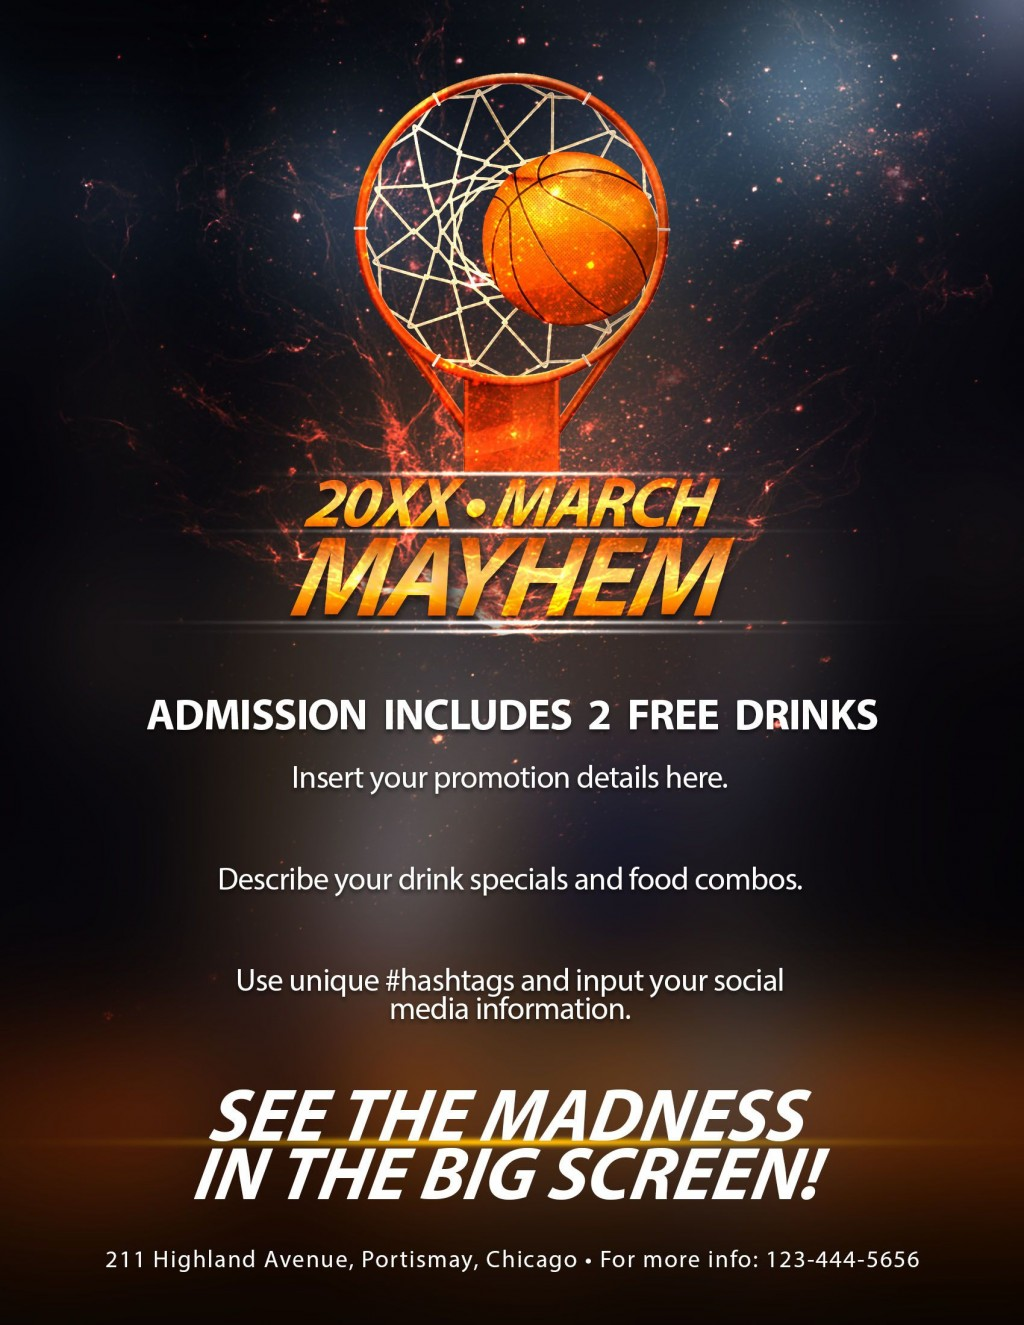 006 Surprising Free Basketball Flyer Template Design  Game 3 On Tournament WordLarge